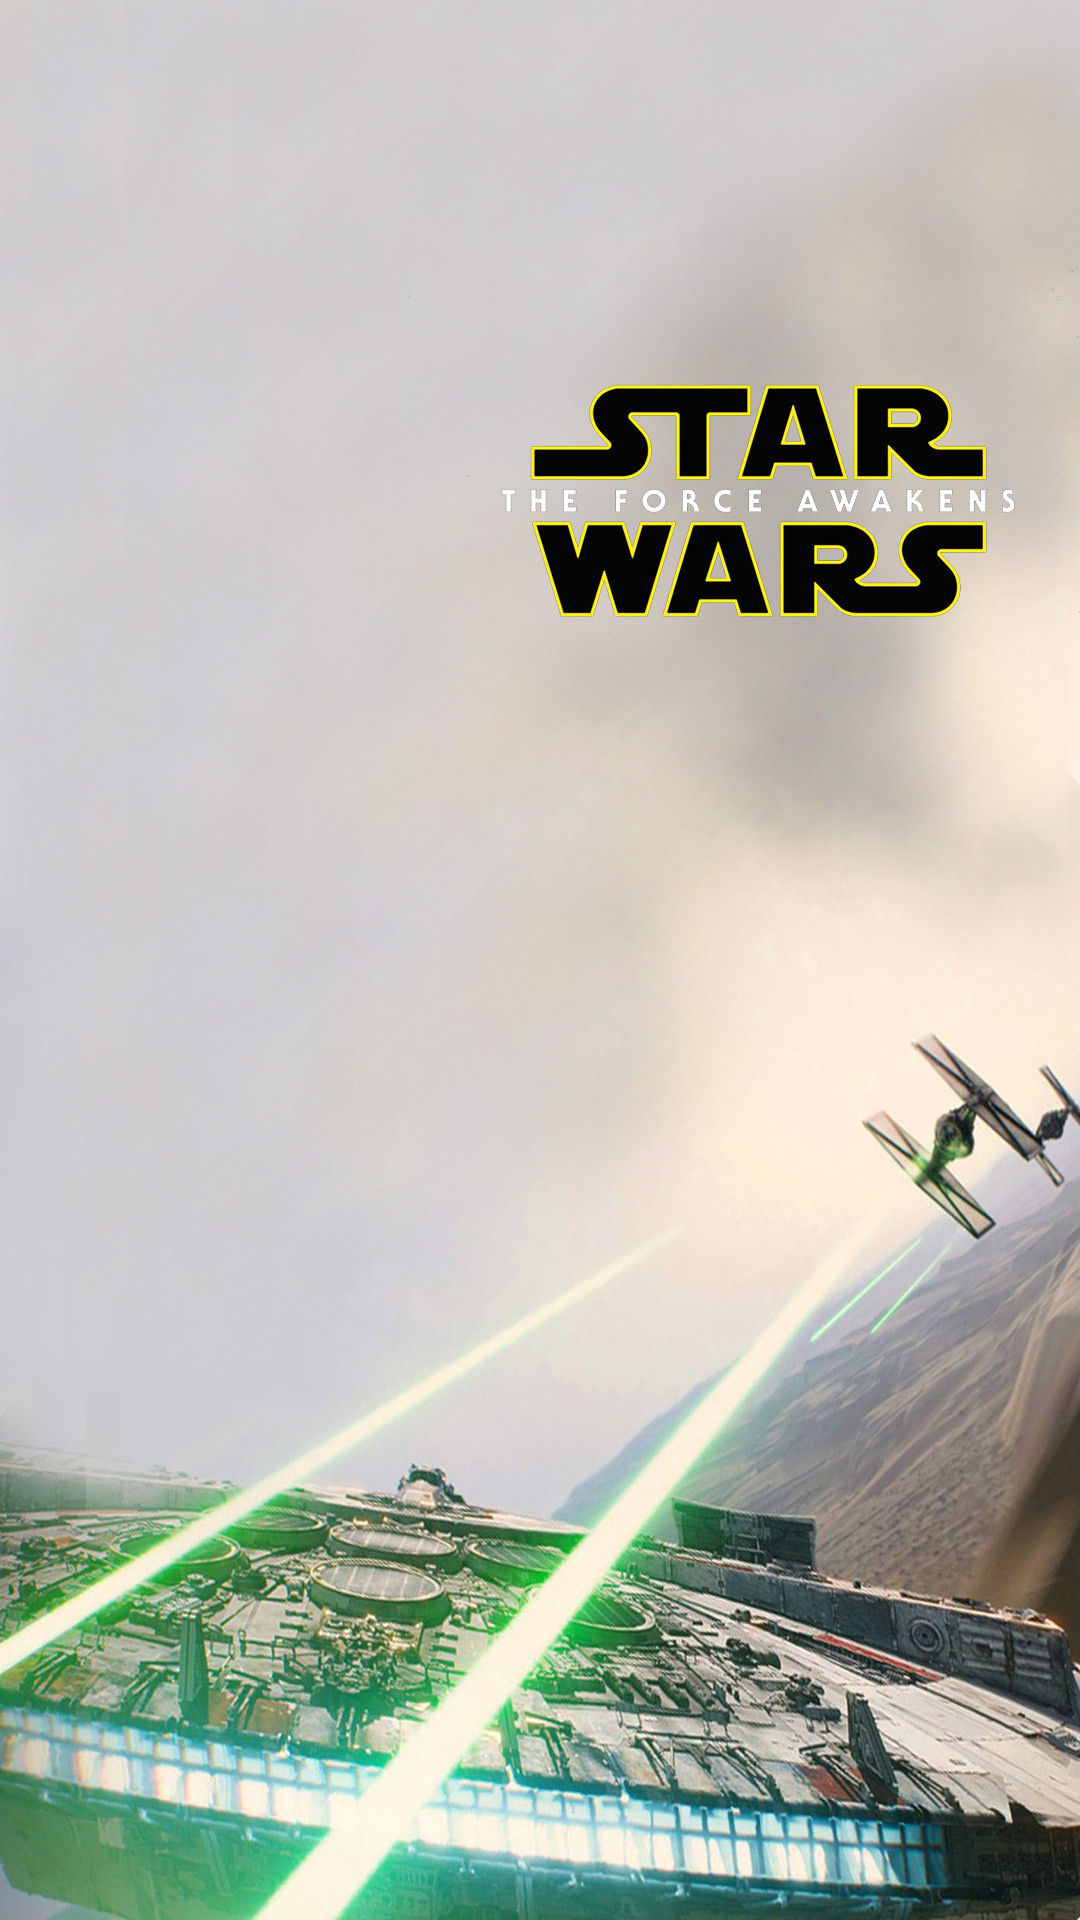 Star Wars The Force Awakens Wallpaper Millennium Falcon Tie Attack